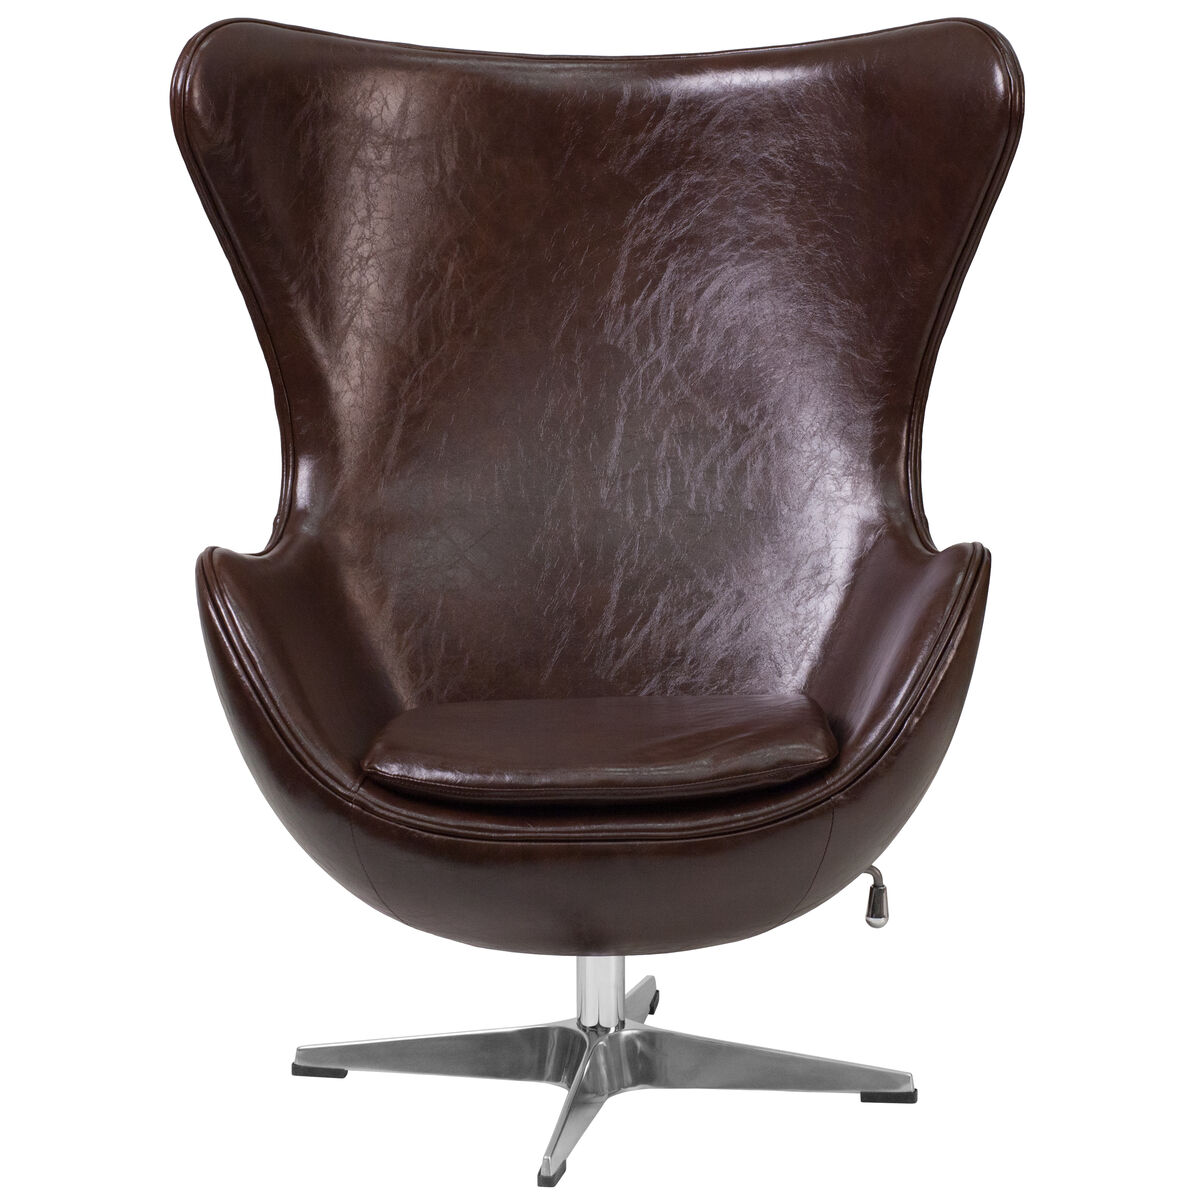 leather egg chair brown leather egg chair zb 11 gg churchchairs4less com 16624 | FLASH FURNITURE ZB 11 GG INSET3